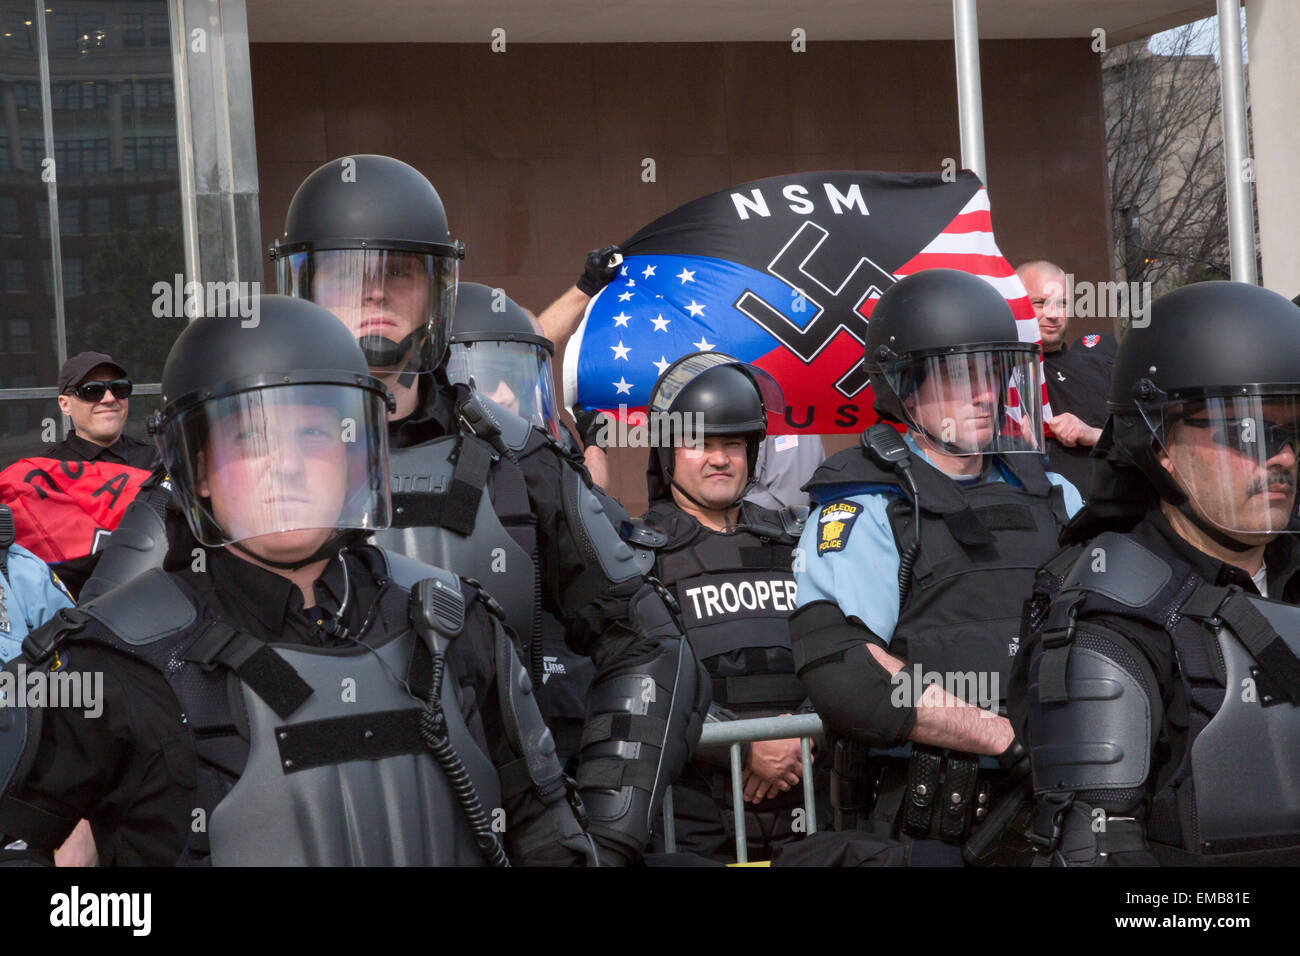 Toledo, Ohio USA - 18 April 2015 - Protected by hundreds of police, the neo-Nazi National Socialist Movement held - Stock Image